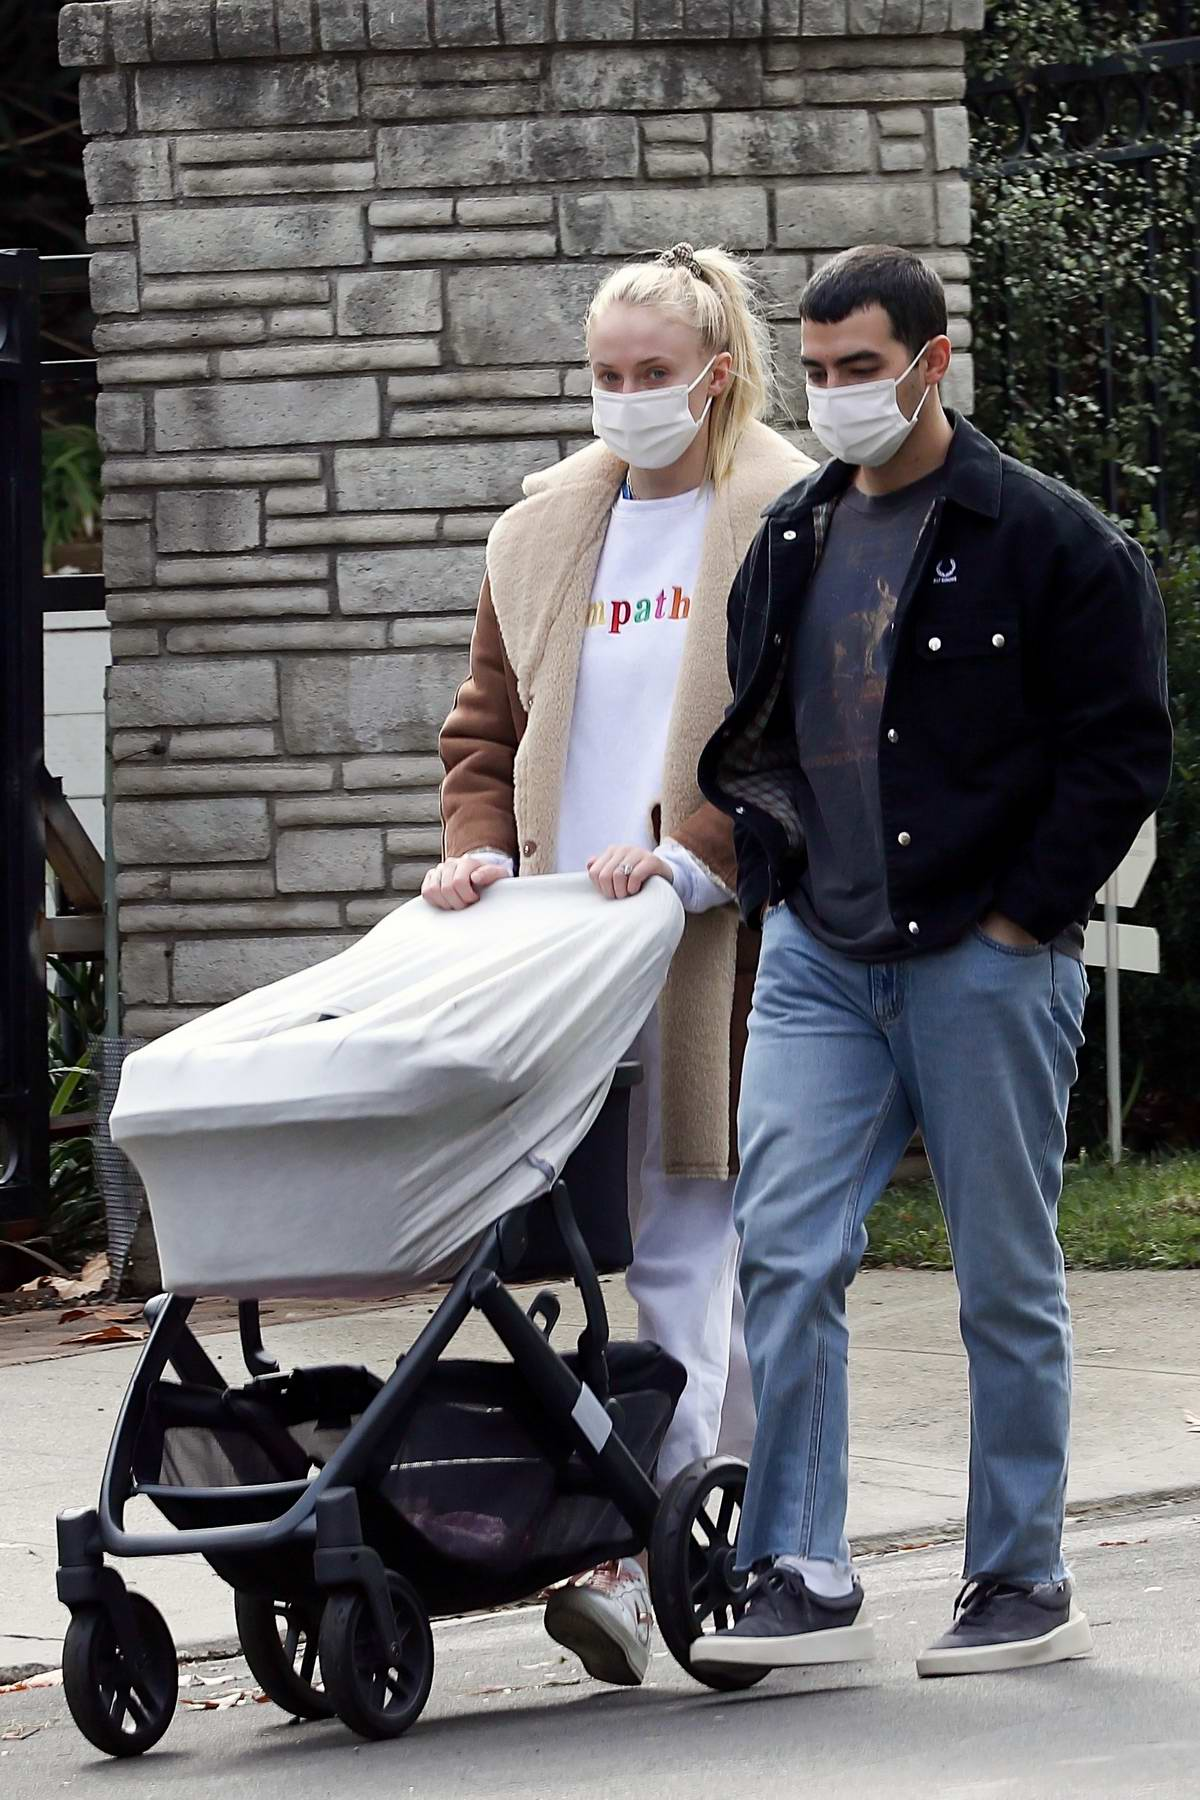 Sophie Turner and Joe Jonas seen out enjoying their daily morning walk with their daughter in Los Angeles